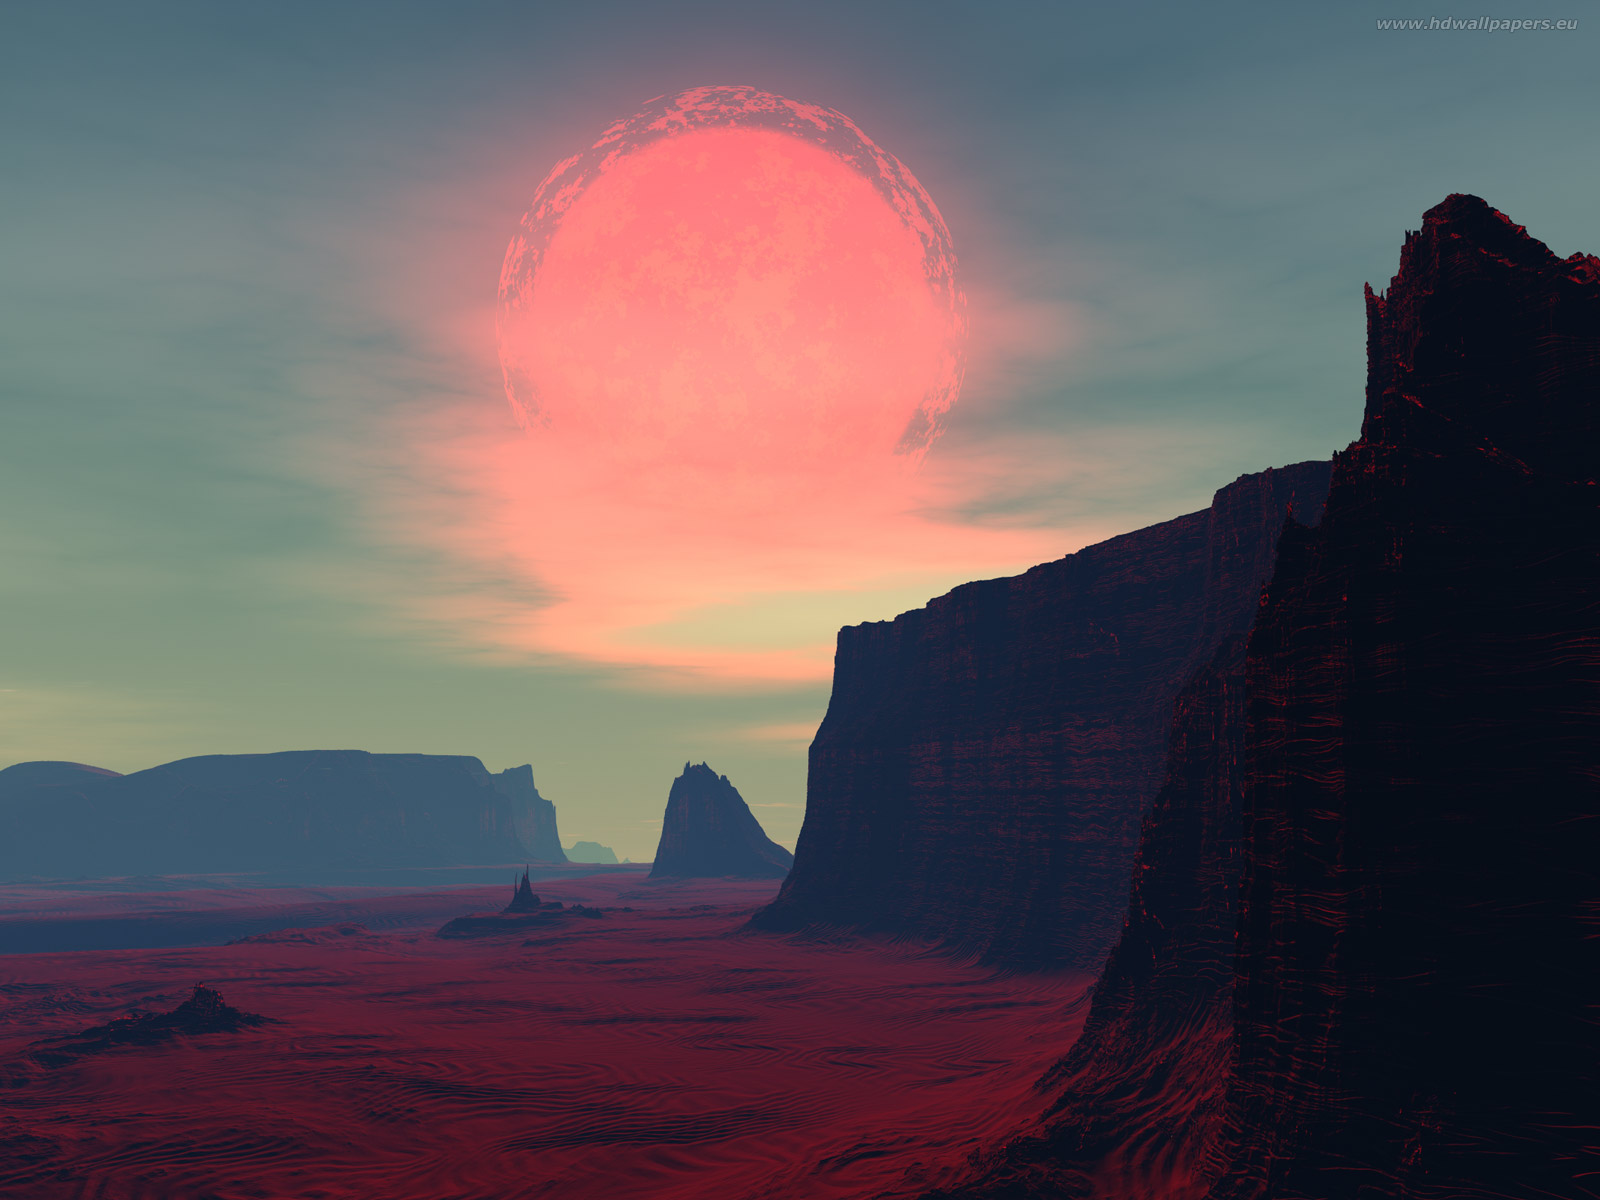 red-sun-planet-maximumshadow 1280x960